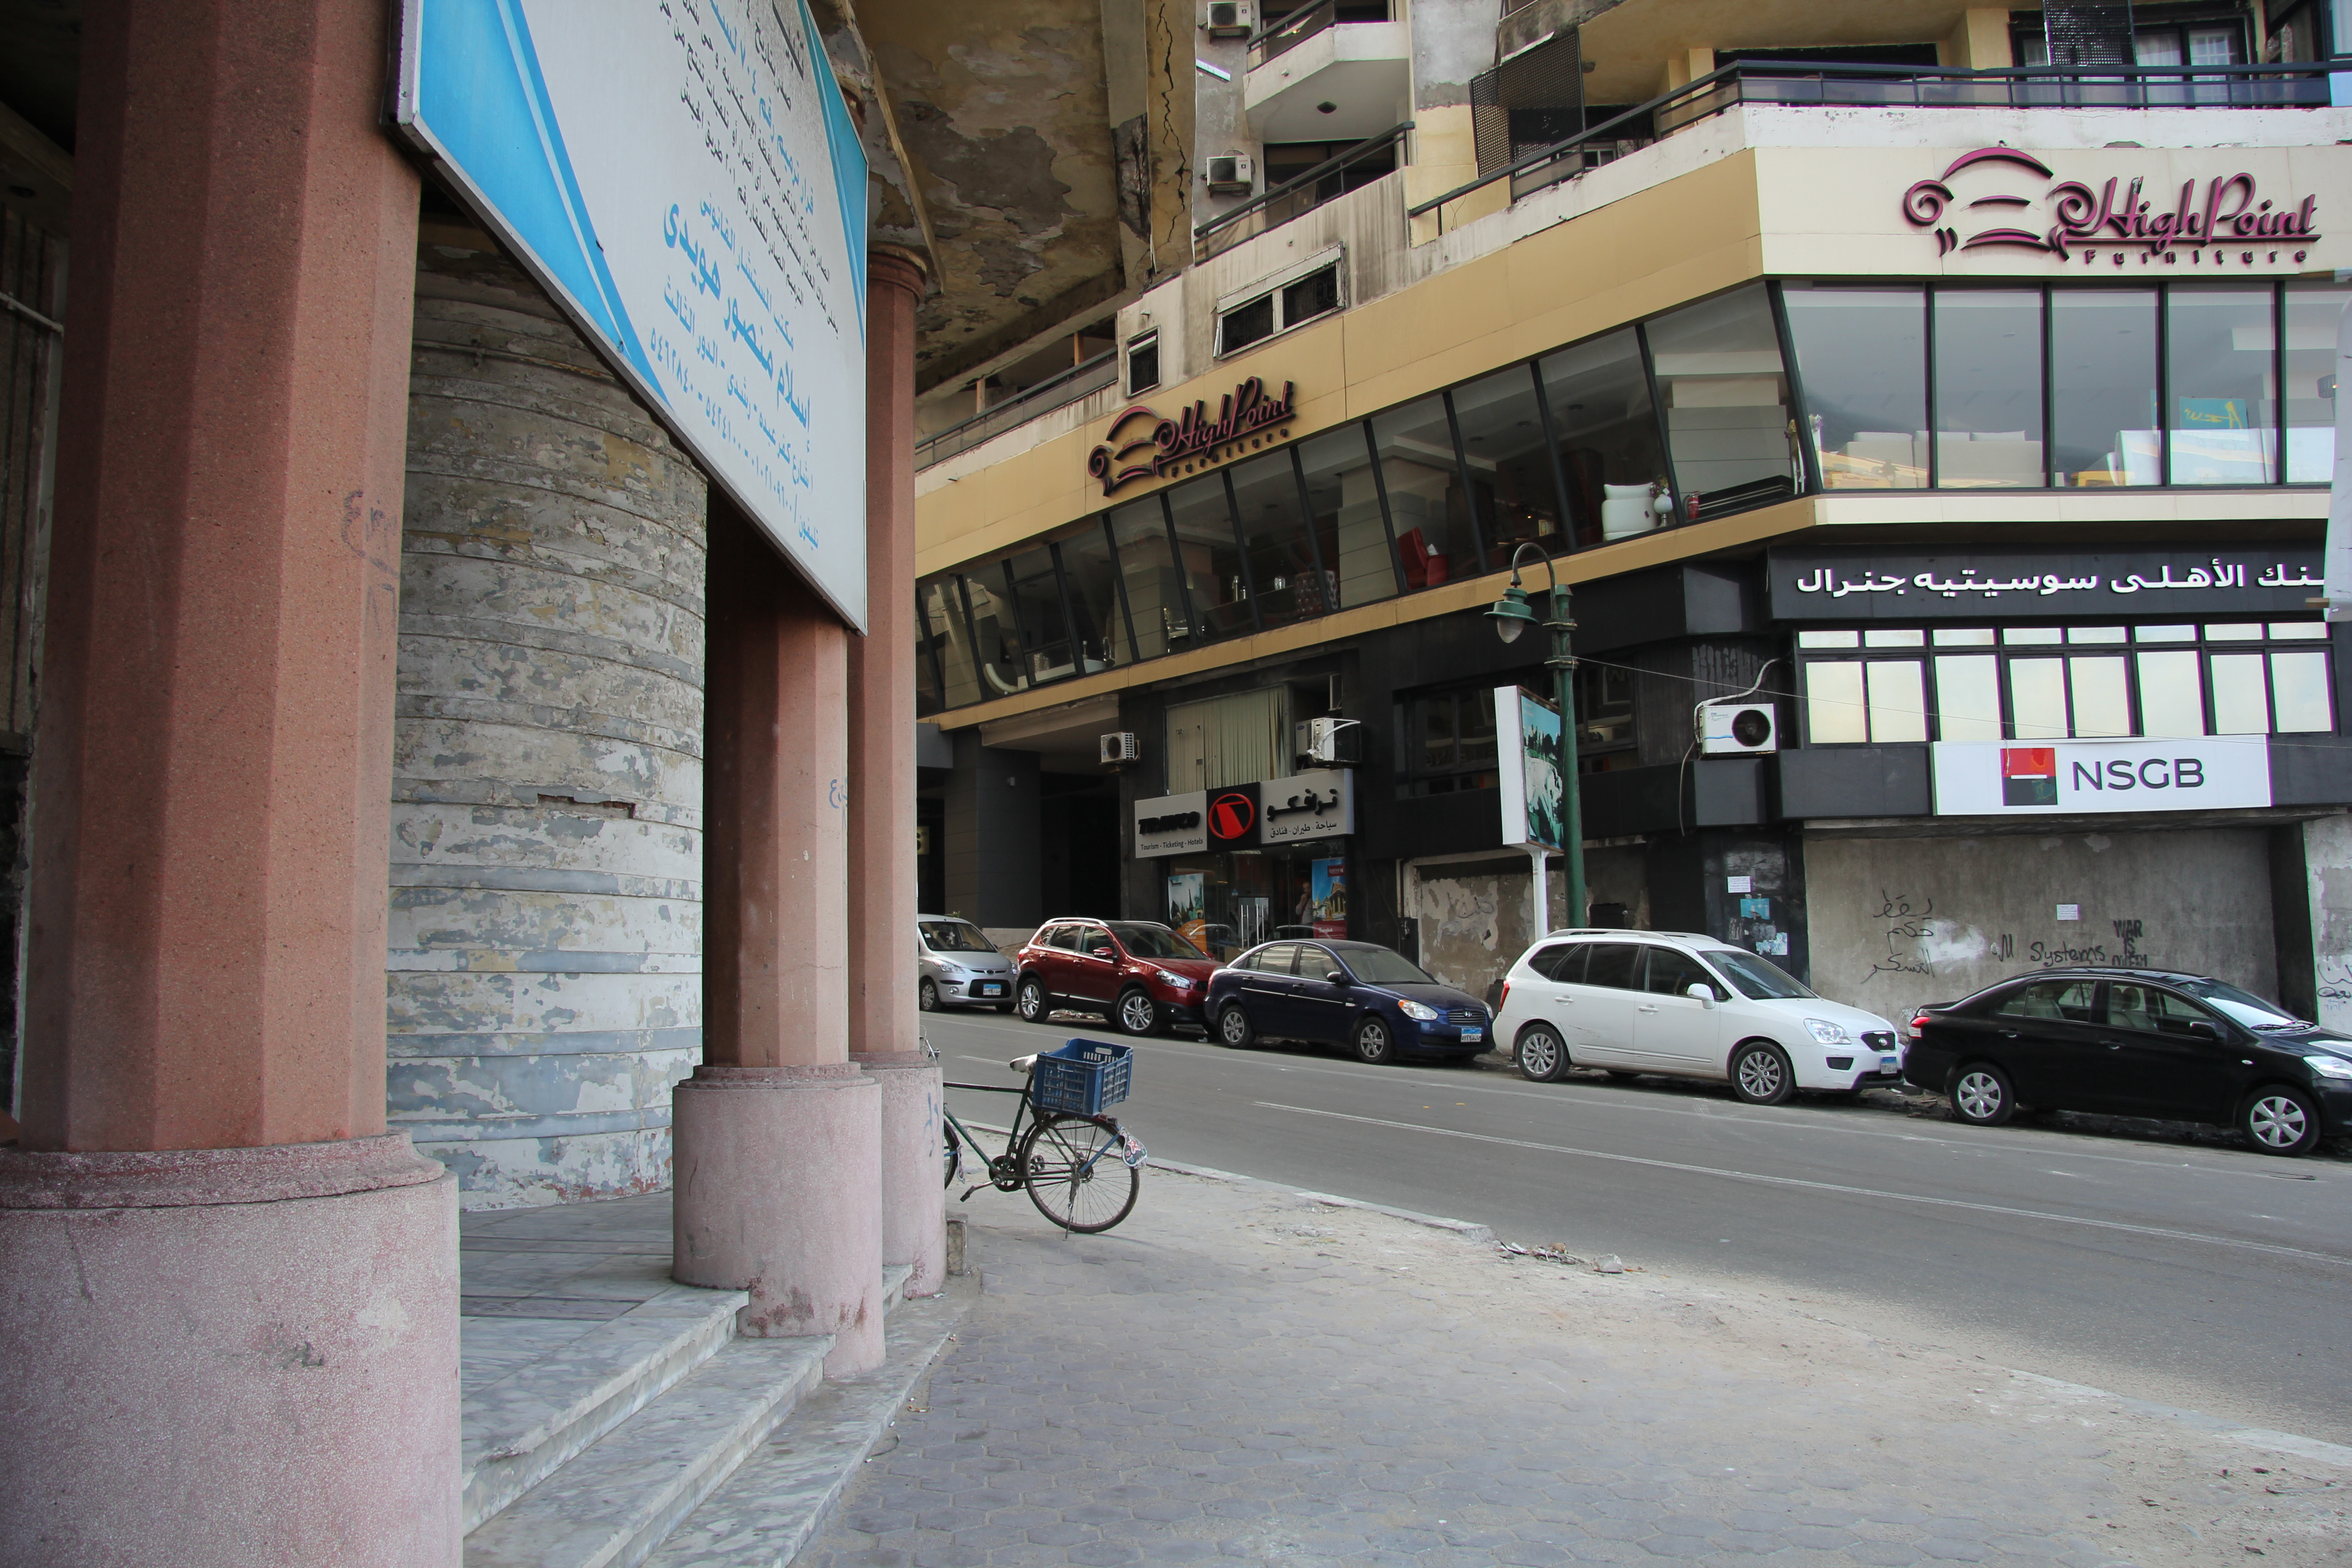 Syria Street enterance, in the background the Business men Building in Alexandria  (Photo by Fady Ashraf)